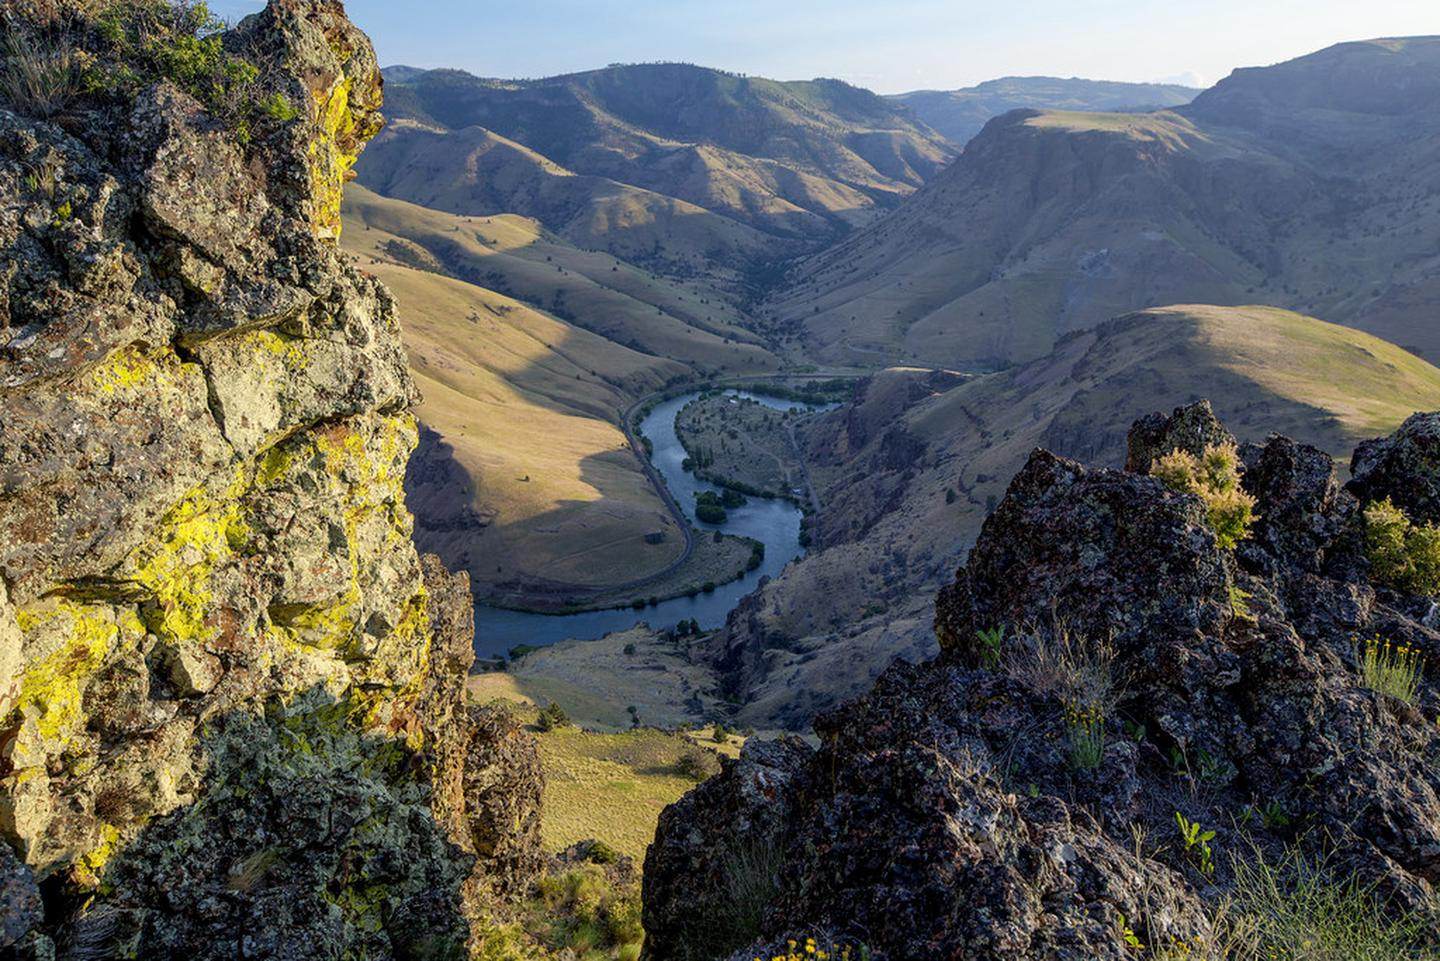 View looking down into Deschutes River canyon.View looking down into Deschutes River canyon.